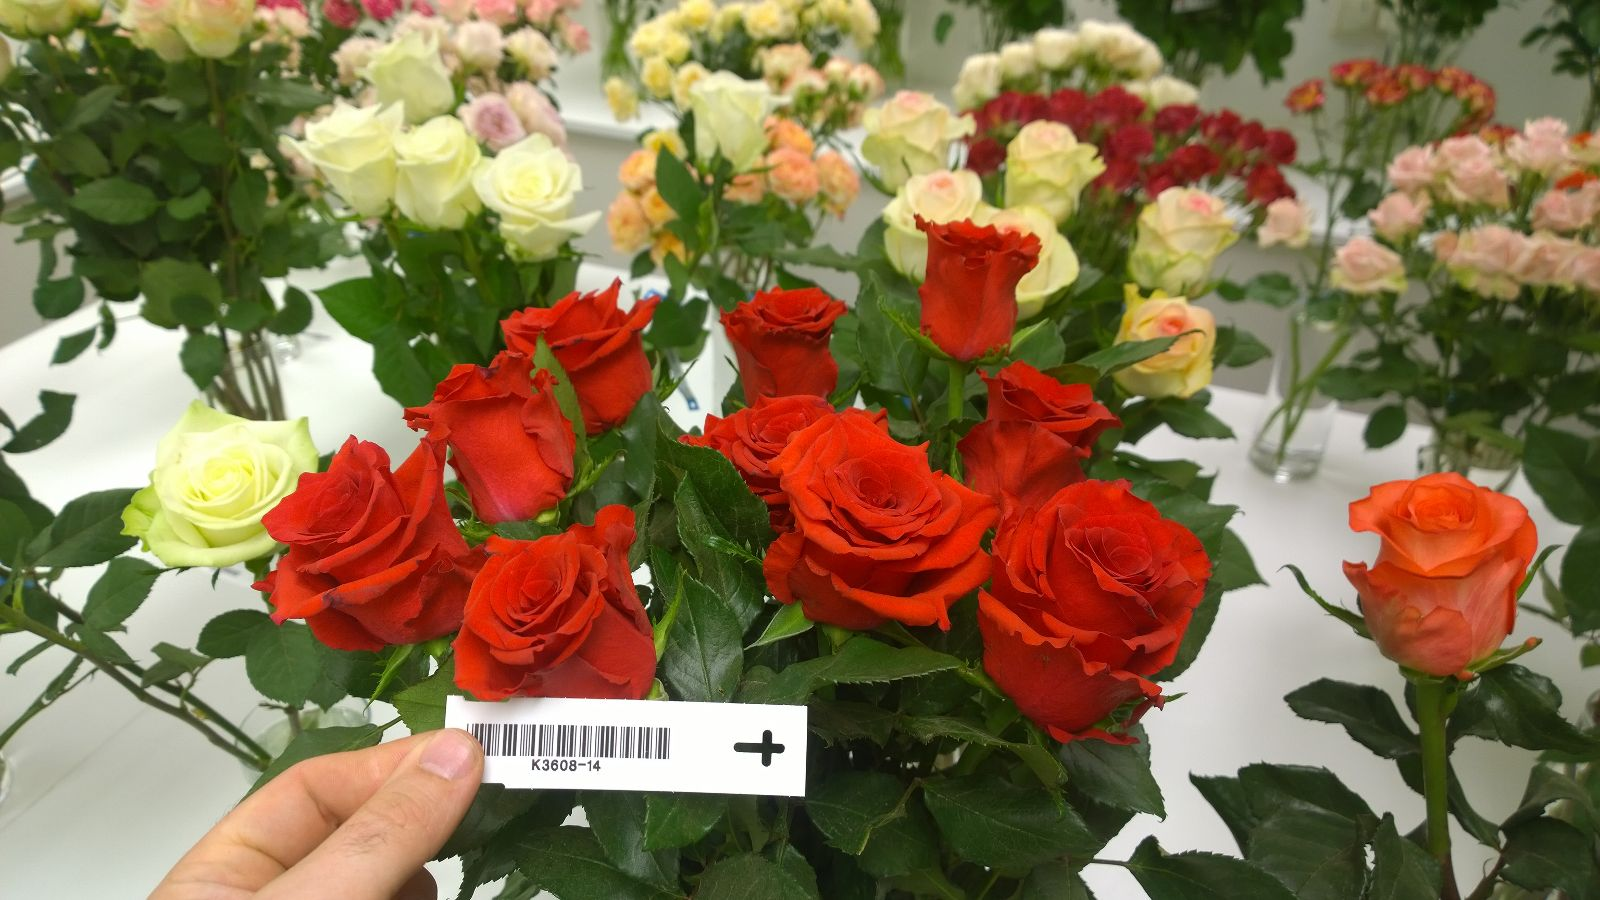 Interplant breeder of cut rose varieties